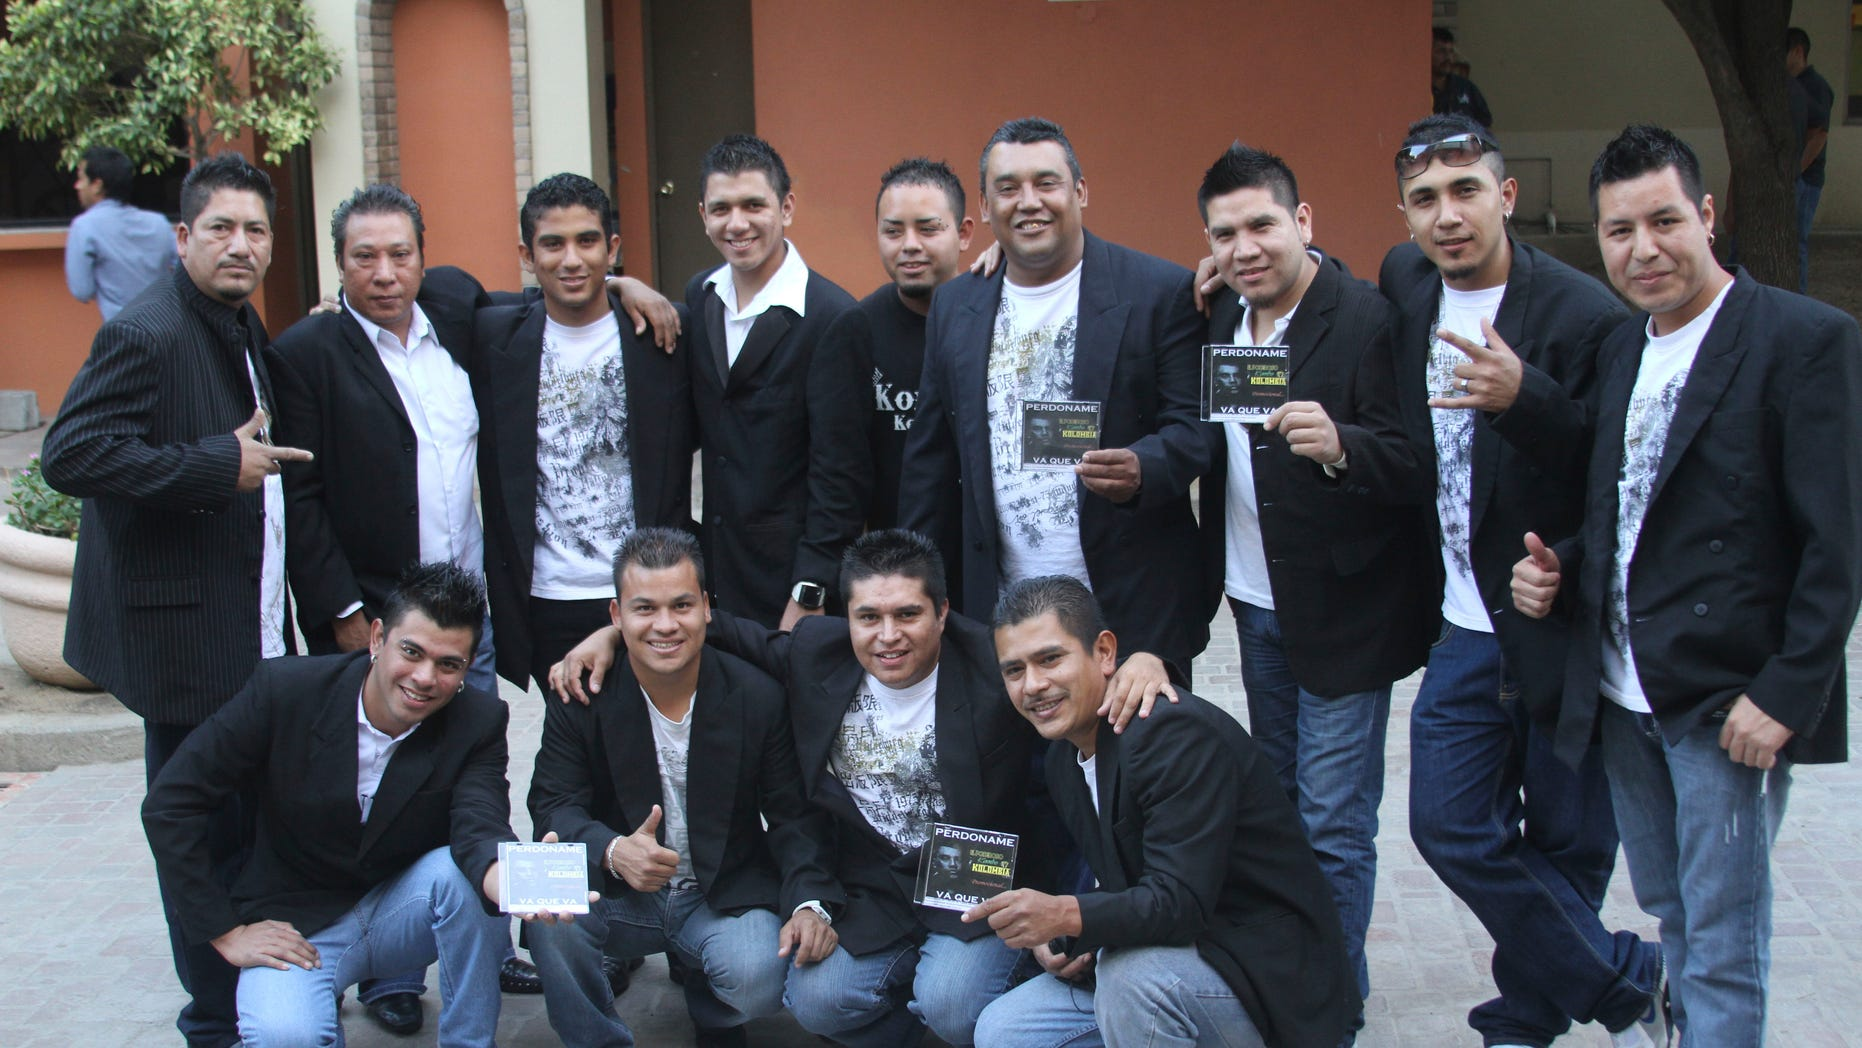 In this Nov. 15, 2011 photo, members of the Colombian style music band Kombo Kolombia pose for the press during a promotional event in Monterrey, Mexico. Sixteen members of the band Kombo Kolombia and four crew members were kidnapped on Friday, Jan. 25, 2013, after playing at a private party held at a ranch called La Carreta, or The Wagon, in the town of Hidalgo north of Monterrey. A member of the band, who managed to escape, led authorities to a well along a dirt road where searchers found several bodies which, authorities said on Monday, Jan. 28, all indicates that they belong to the missing band members. (AP Photo)